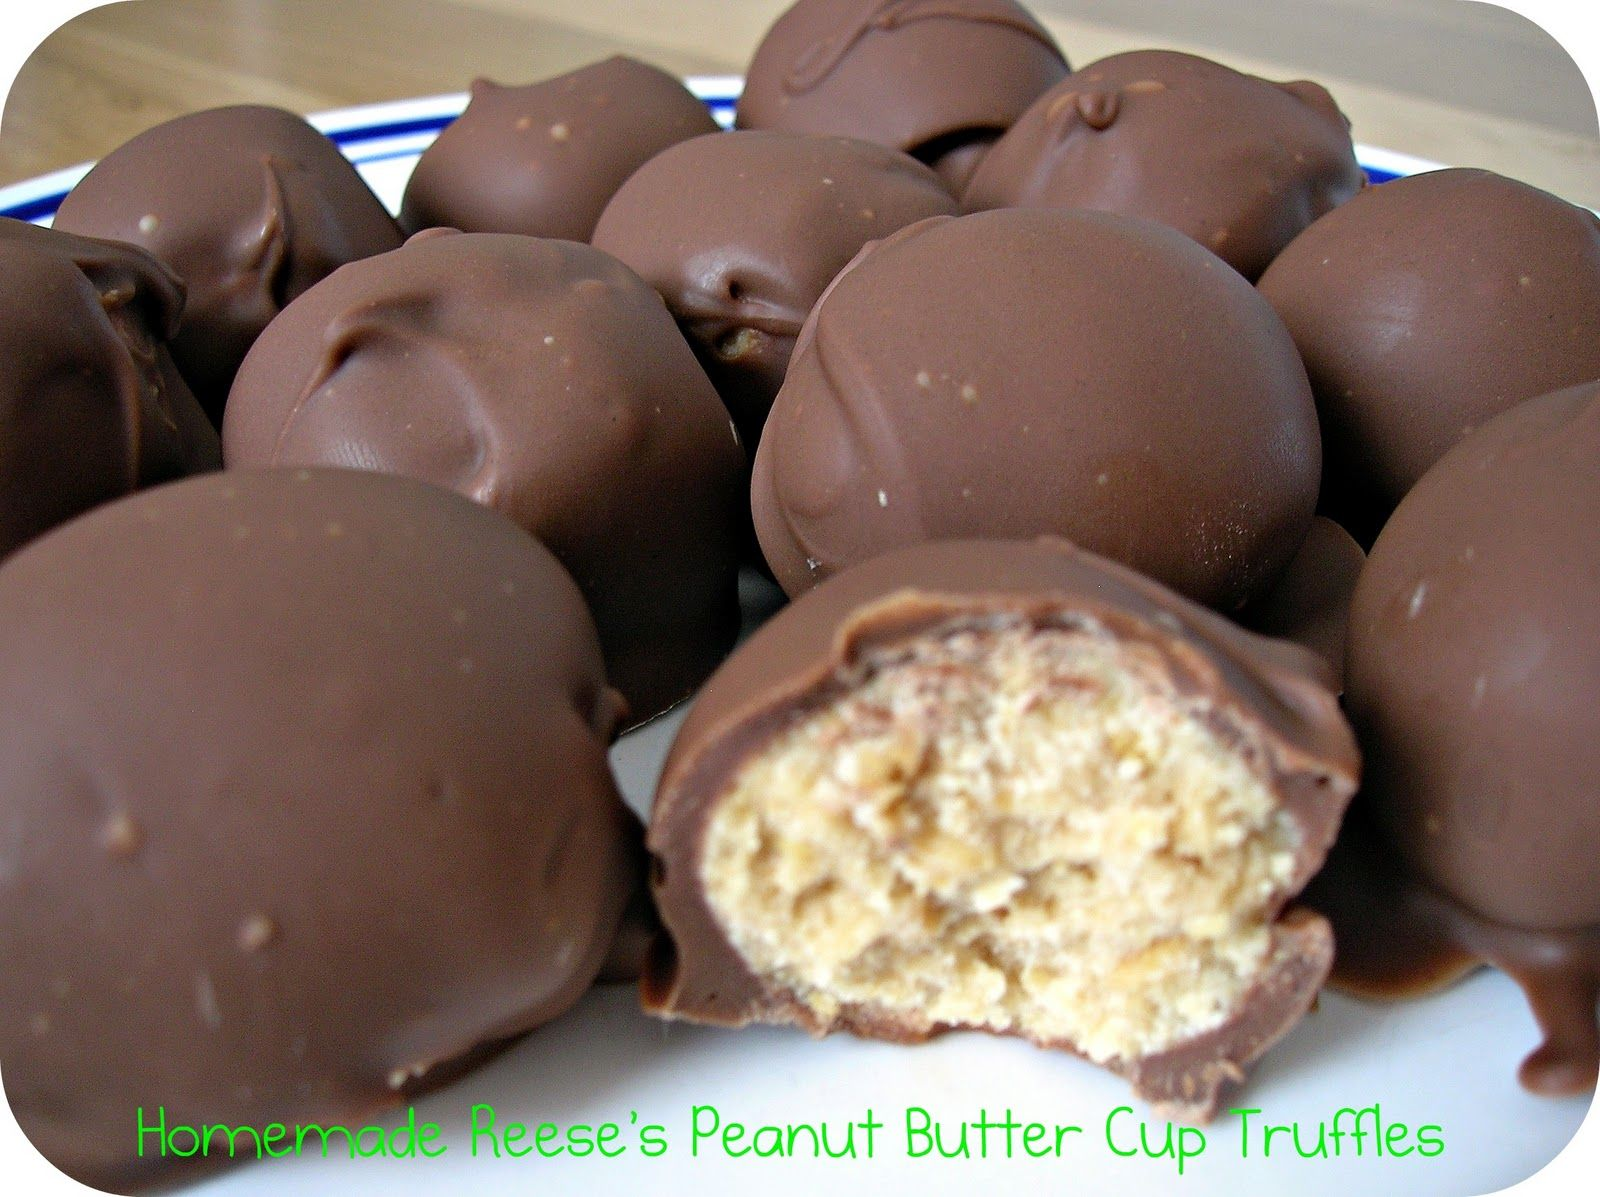 I think my life has just been changed. 5 ingredients. No bake Homemade Reese's Peanut Butter Cup Truffles.